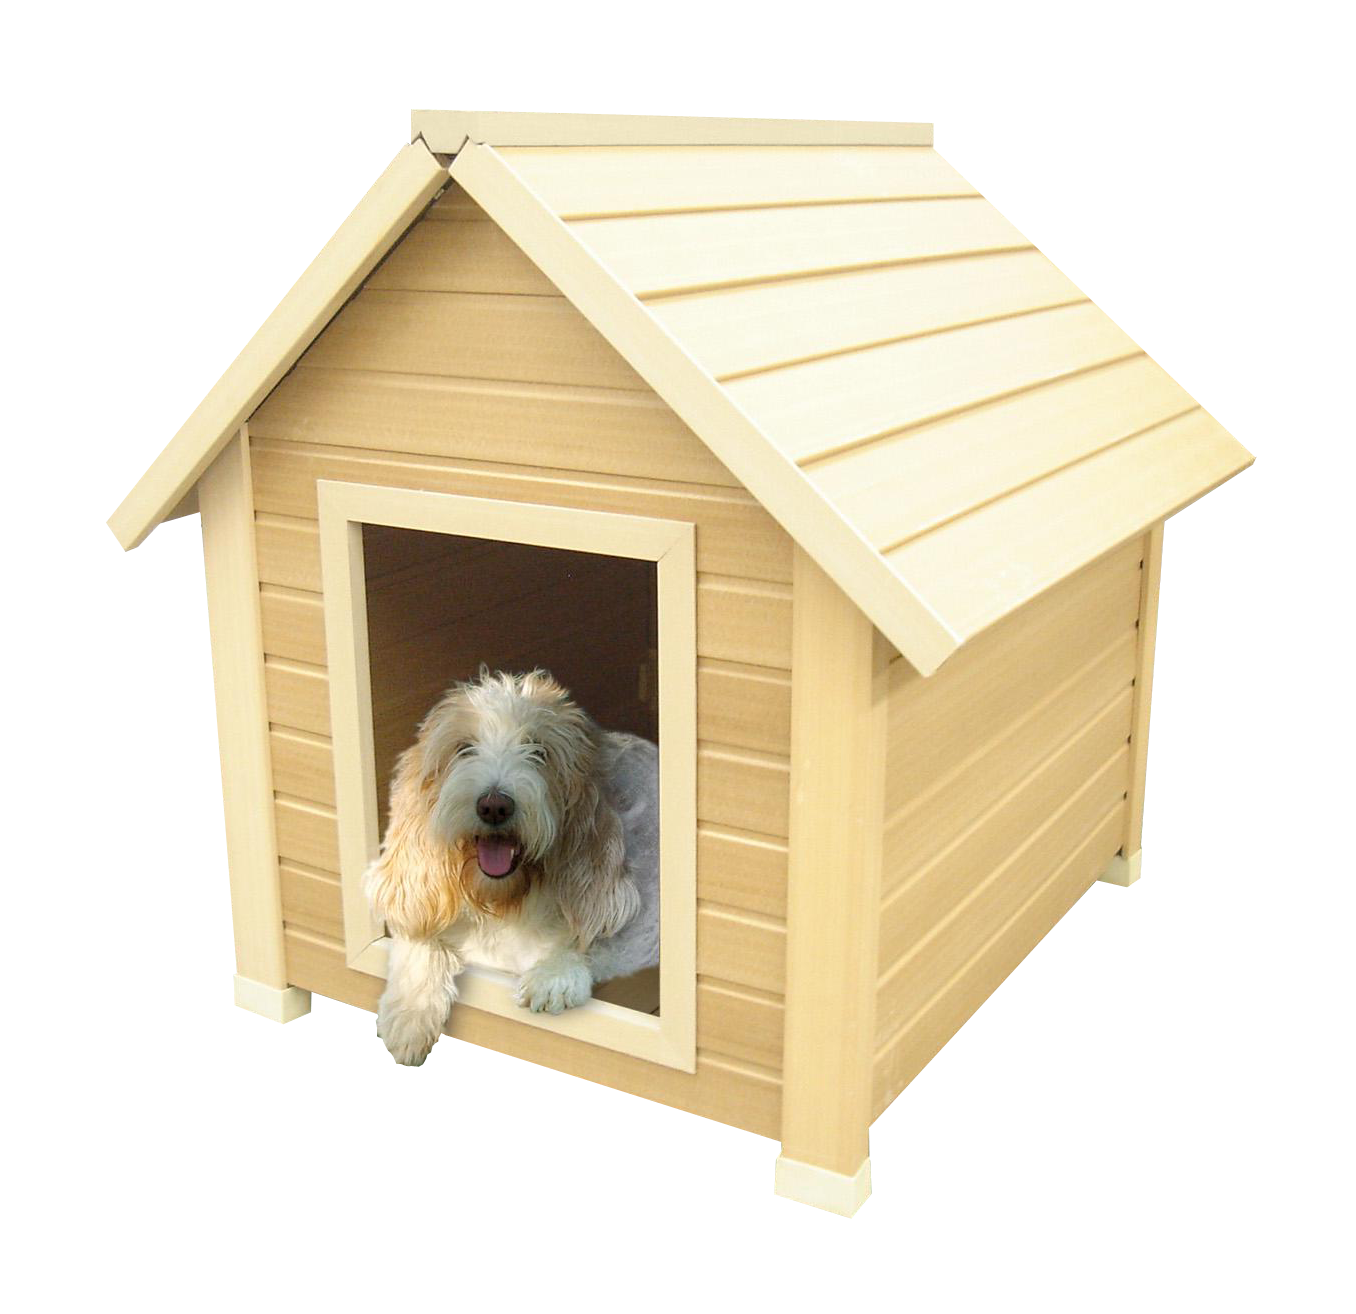 Dog png image purepng. Pet clipart house